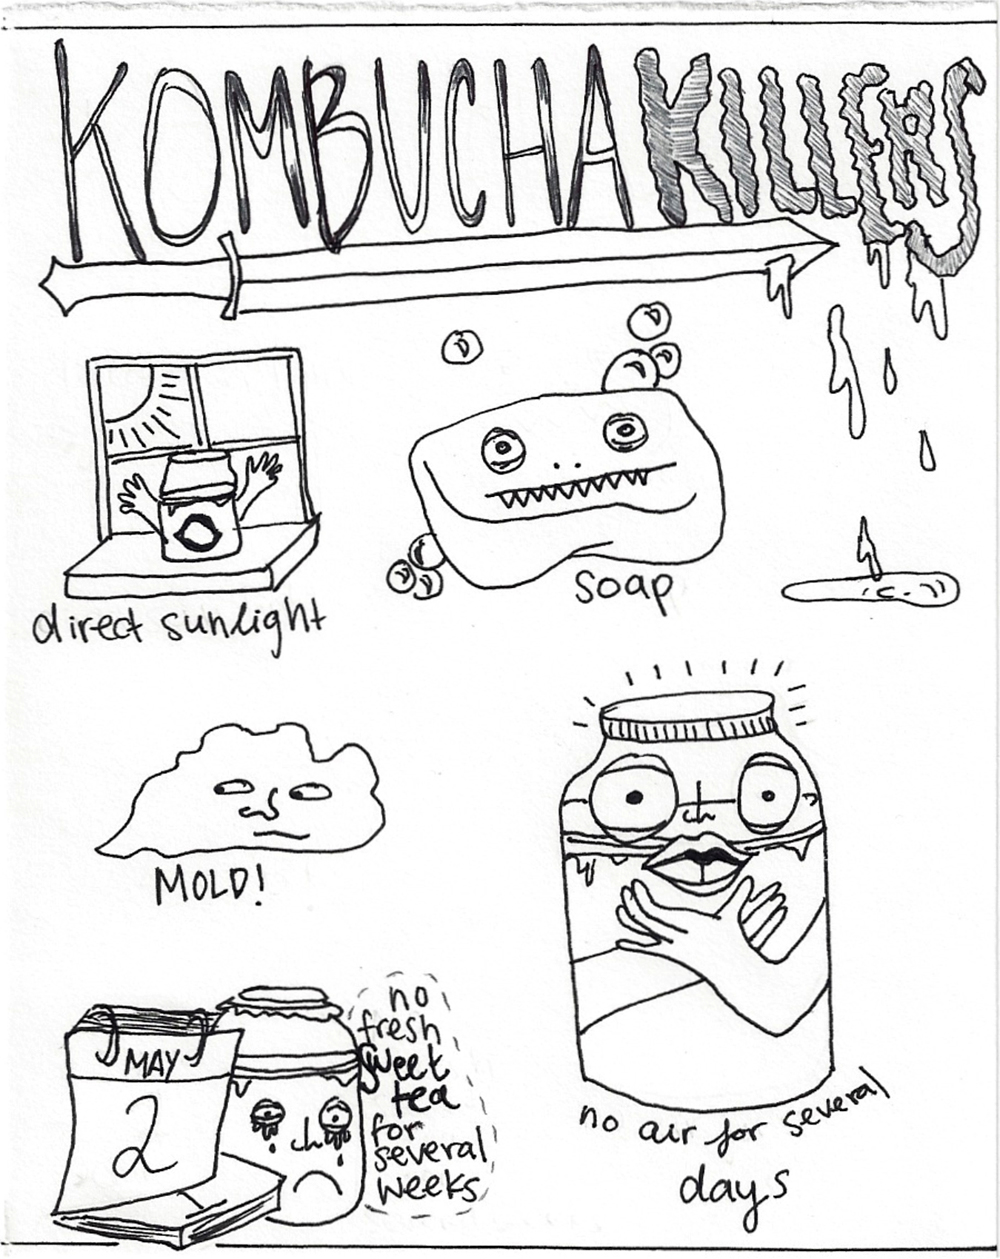 Kombucha Killers. Illustration by Lila Volkas